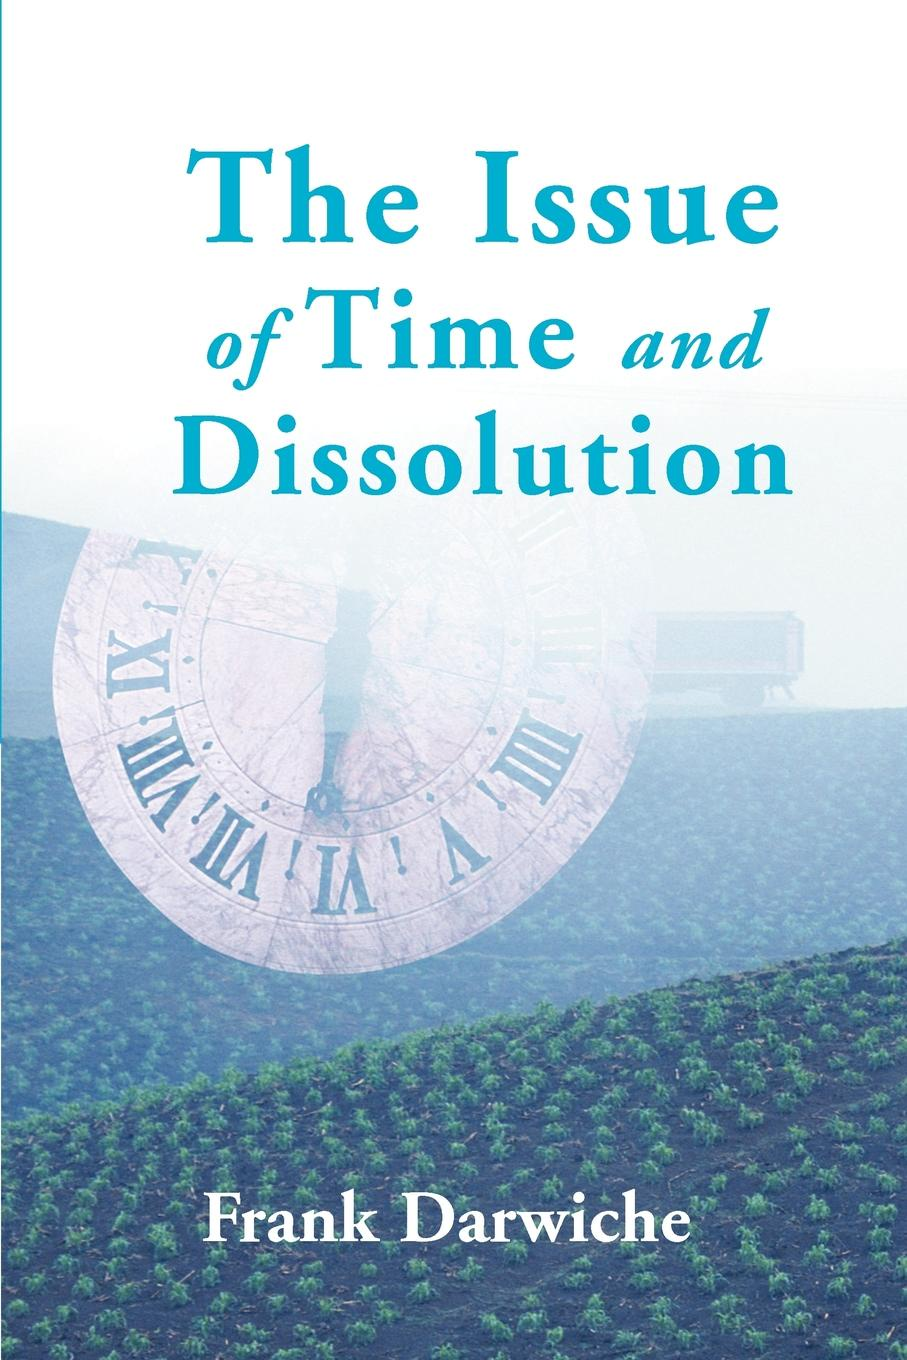 The Issue of Time and Dissolution. Frank Darwiche